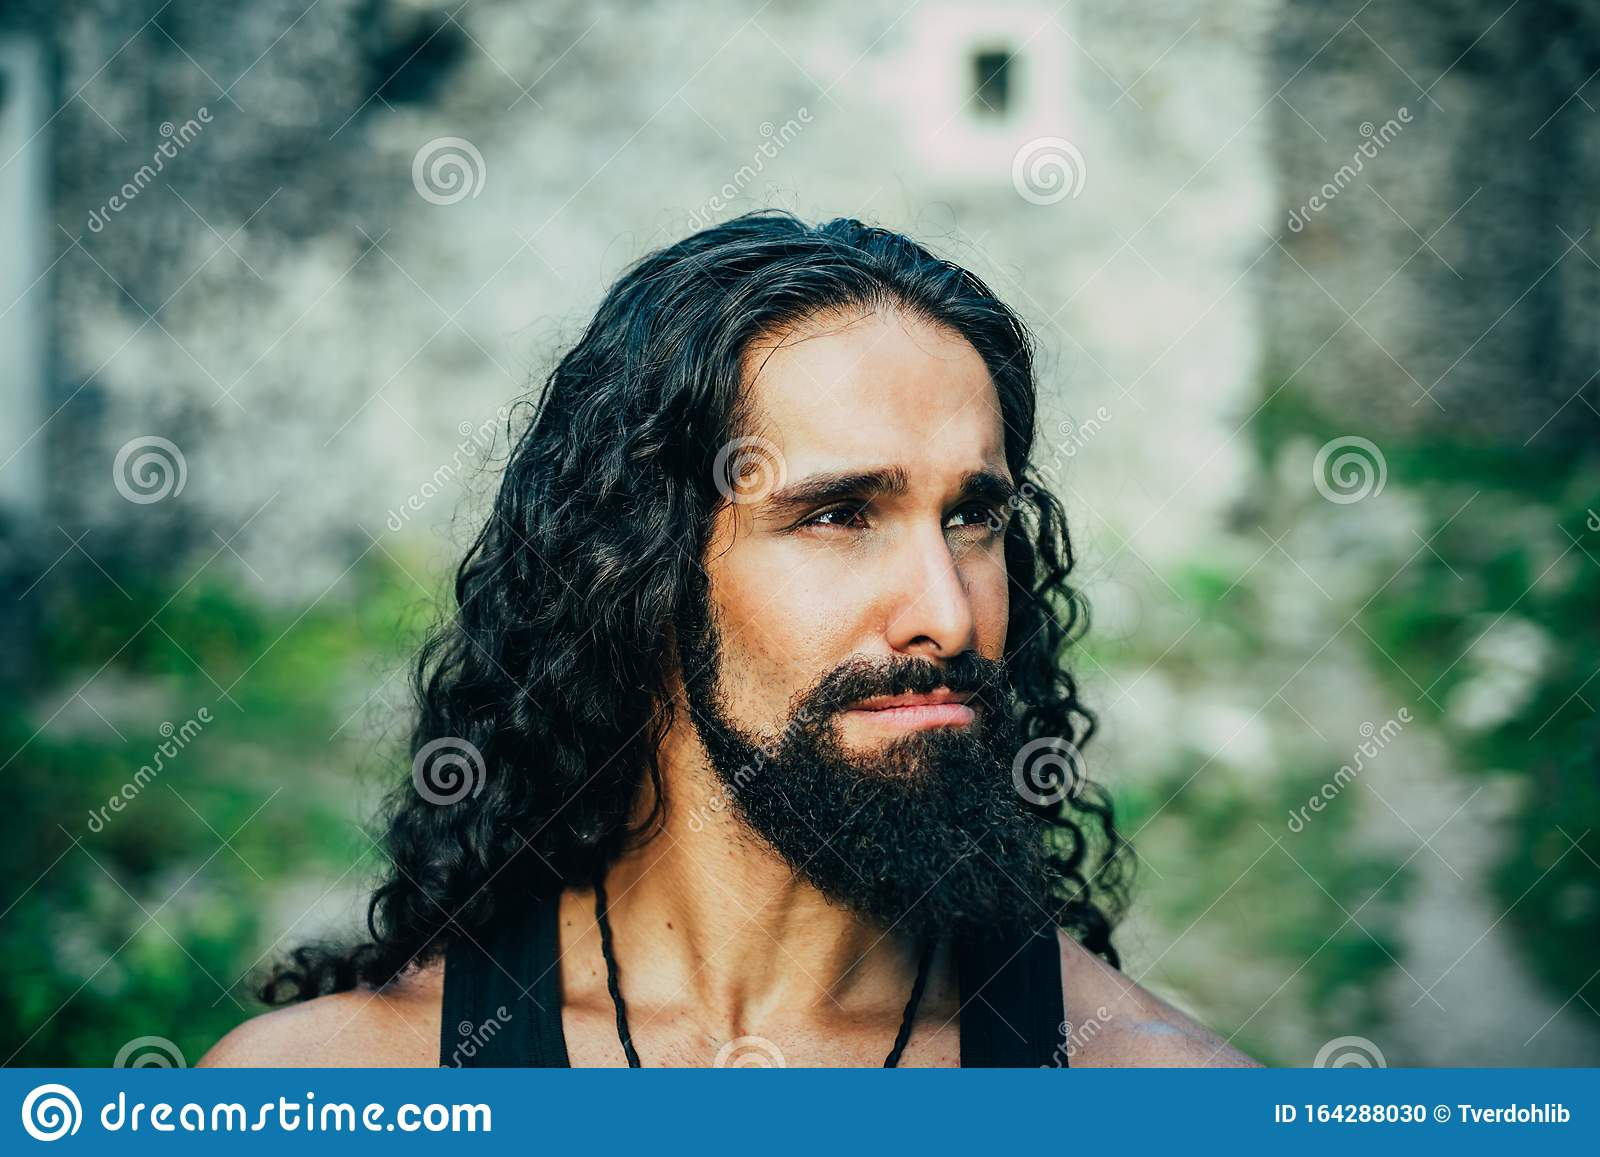 Sad Frustrated Man With Long Dark Wavy Hair And Beard Looking Far Away Portrait Of Handsome Man With Disappointed Face Stock Photo Image Of Outside Macho 164288030